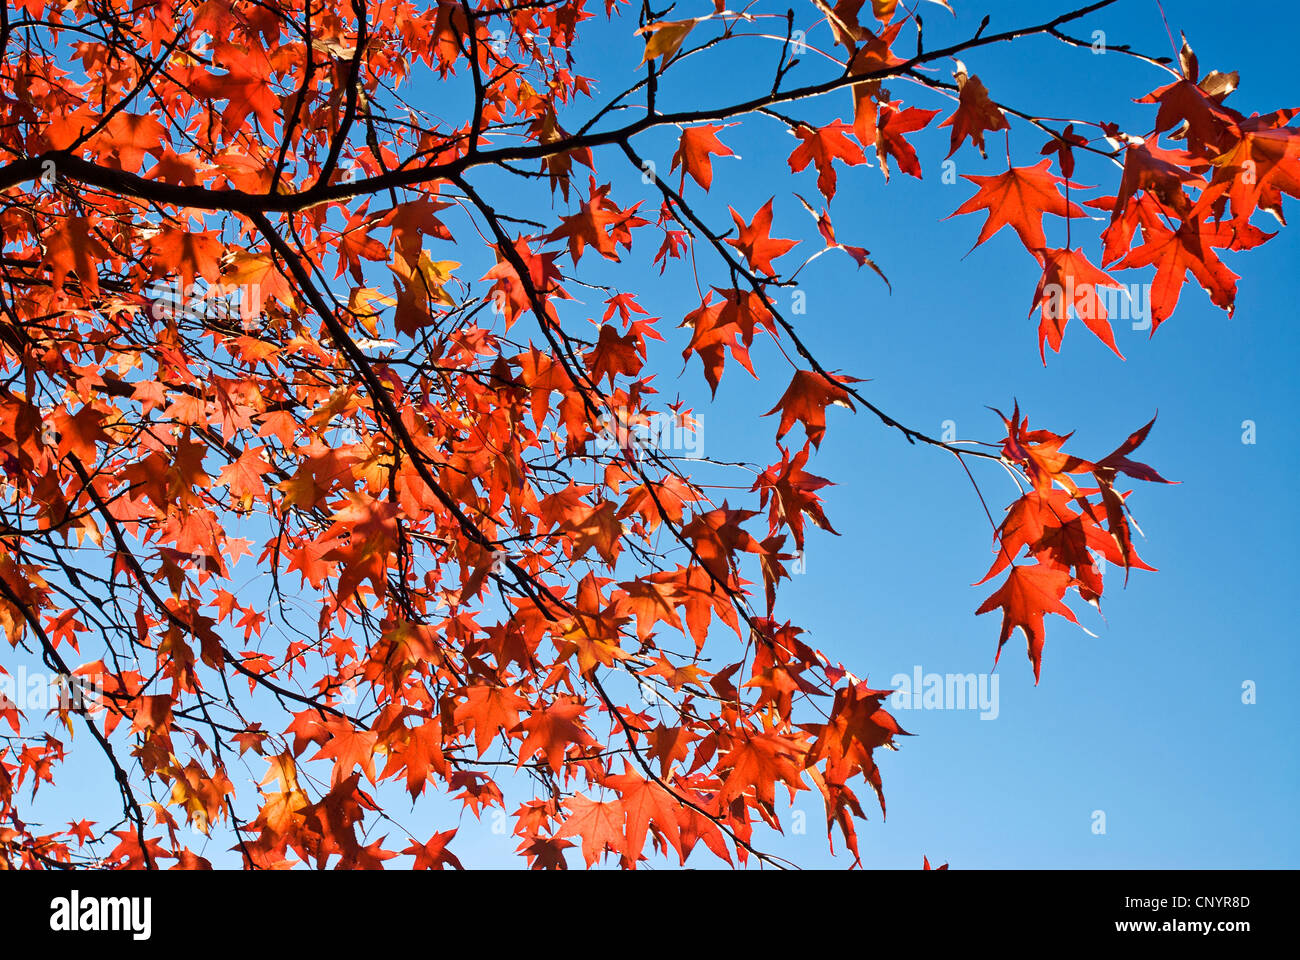 Red leaves in Autumn with blue sky background. - Stock Image